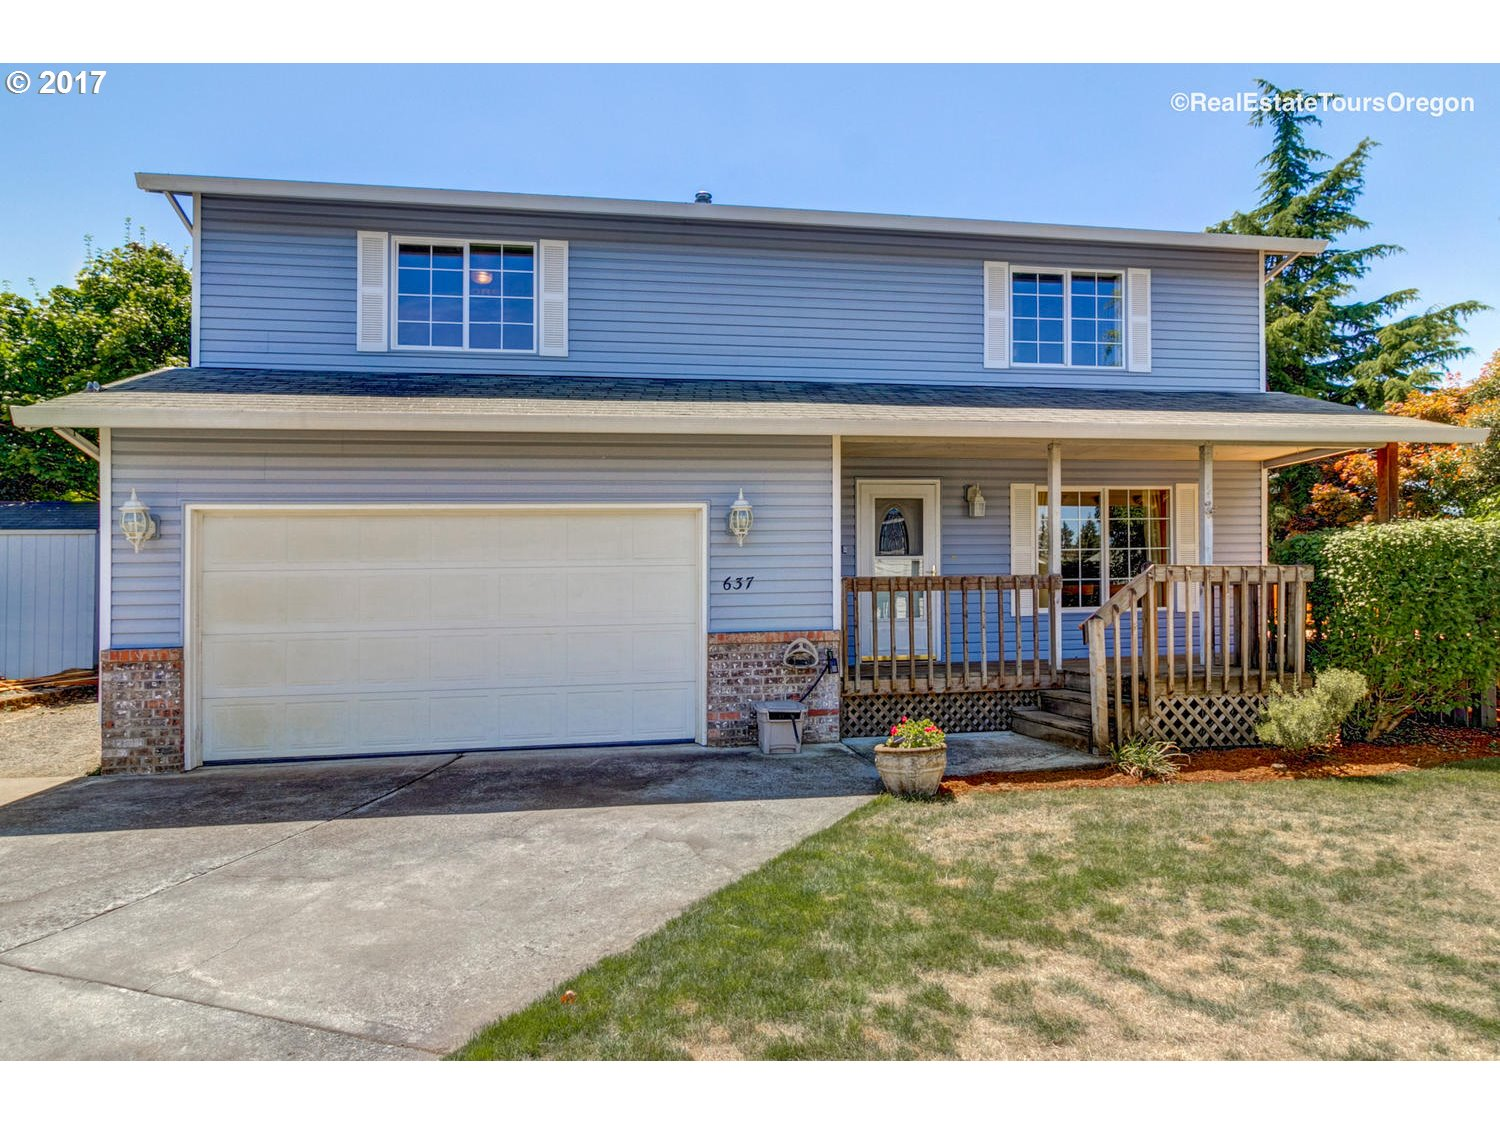 637 S OAK PL, Canby, OR 97013